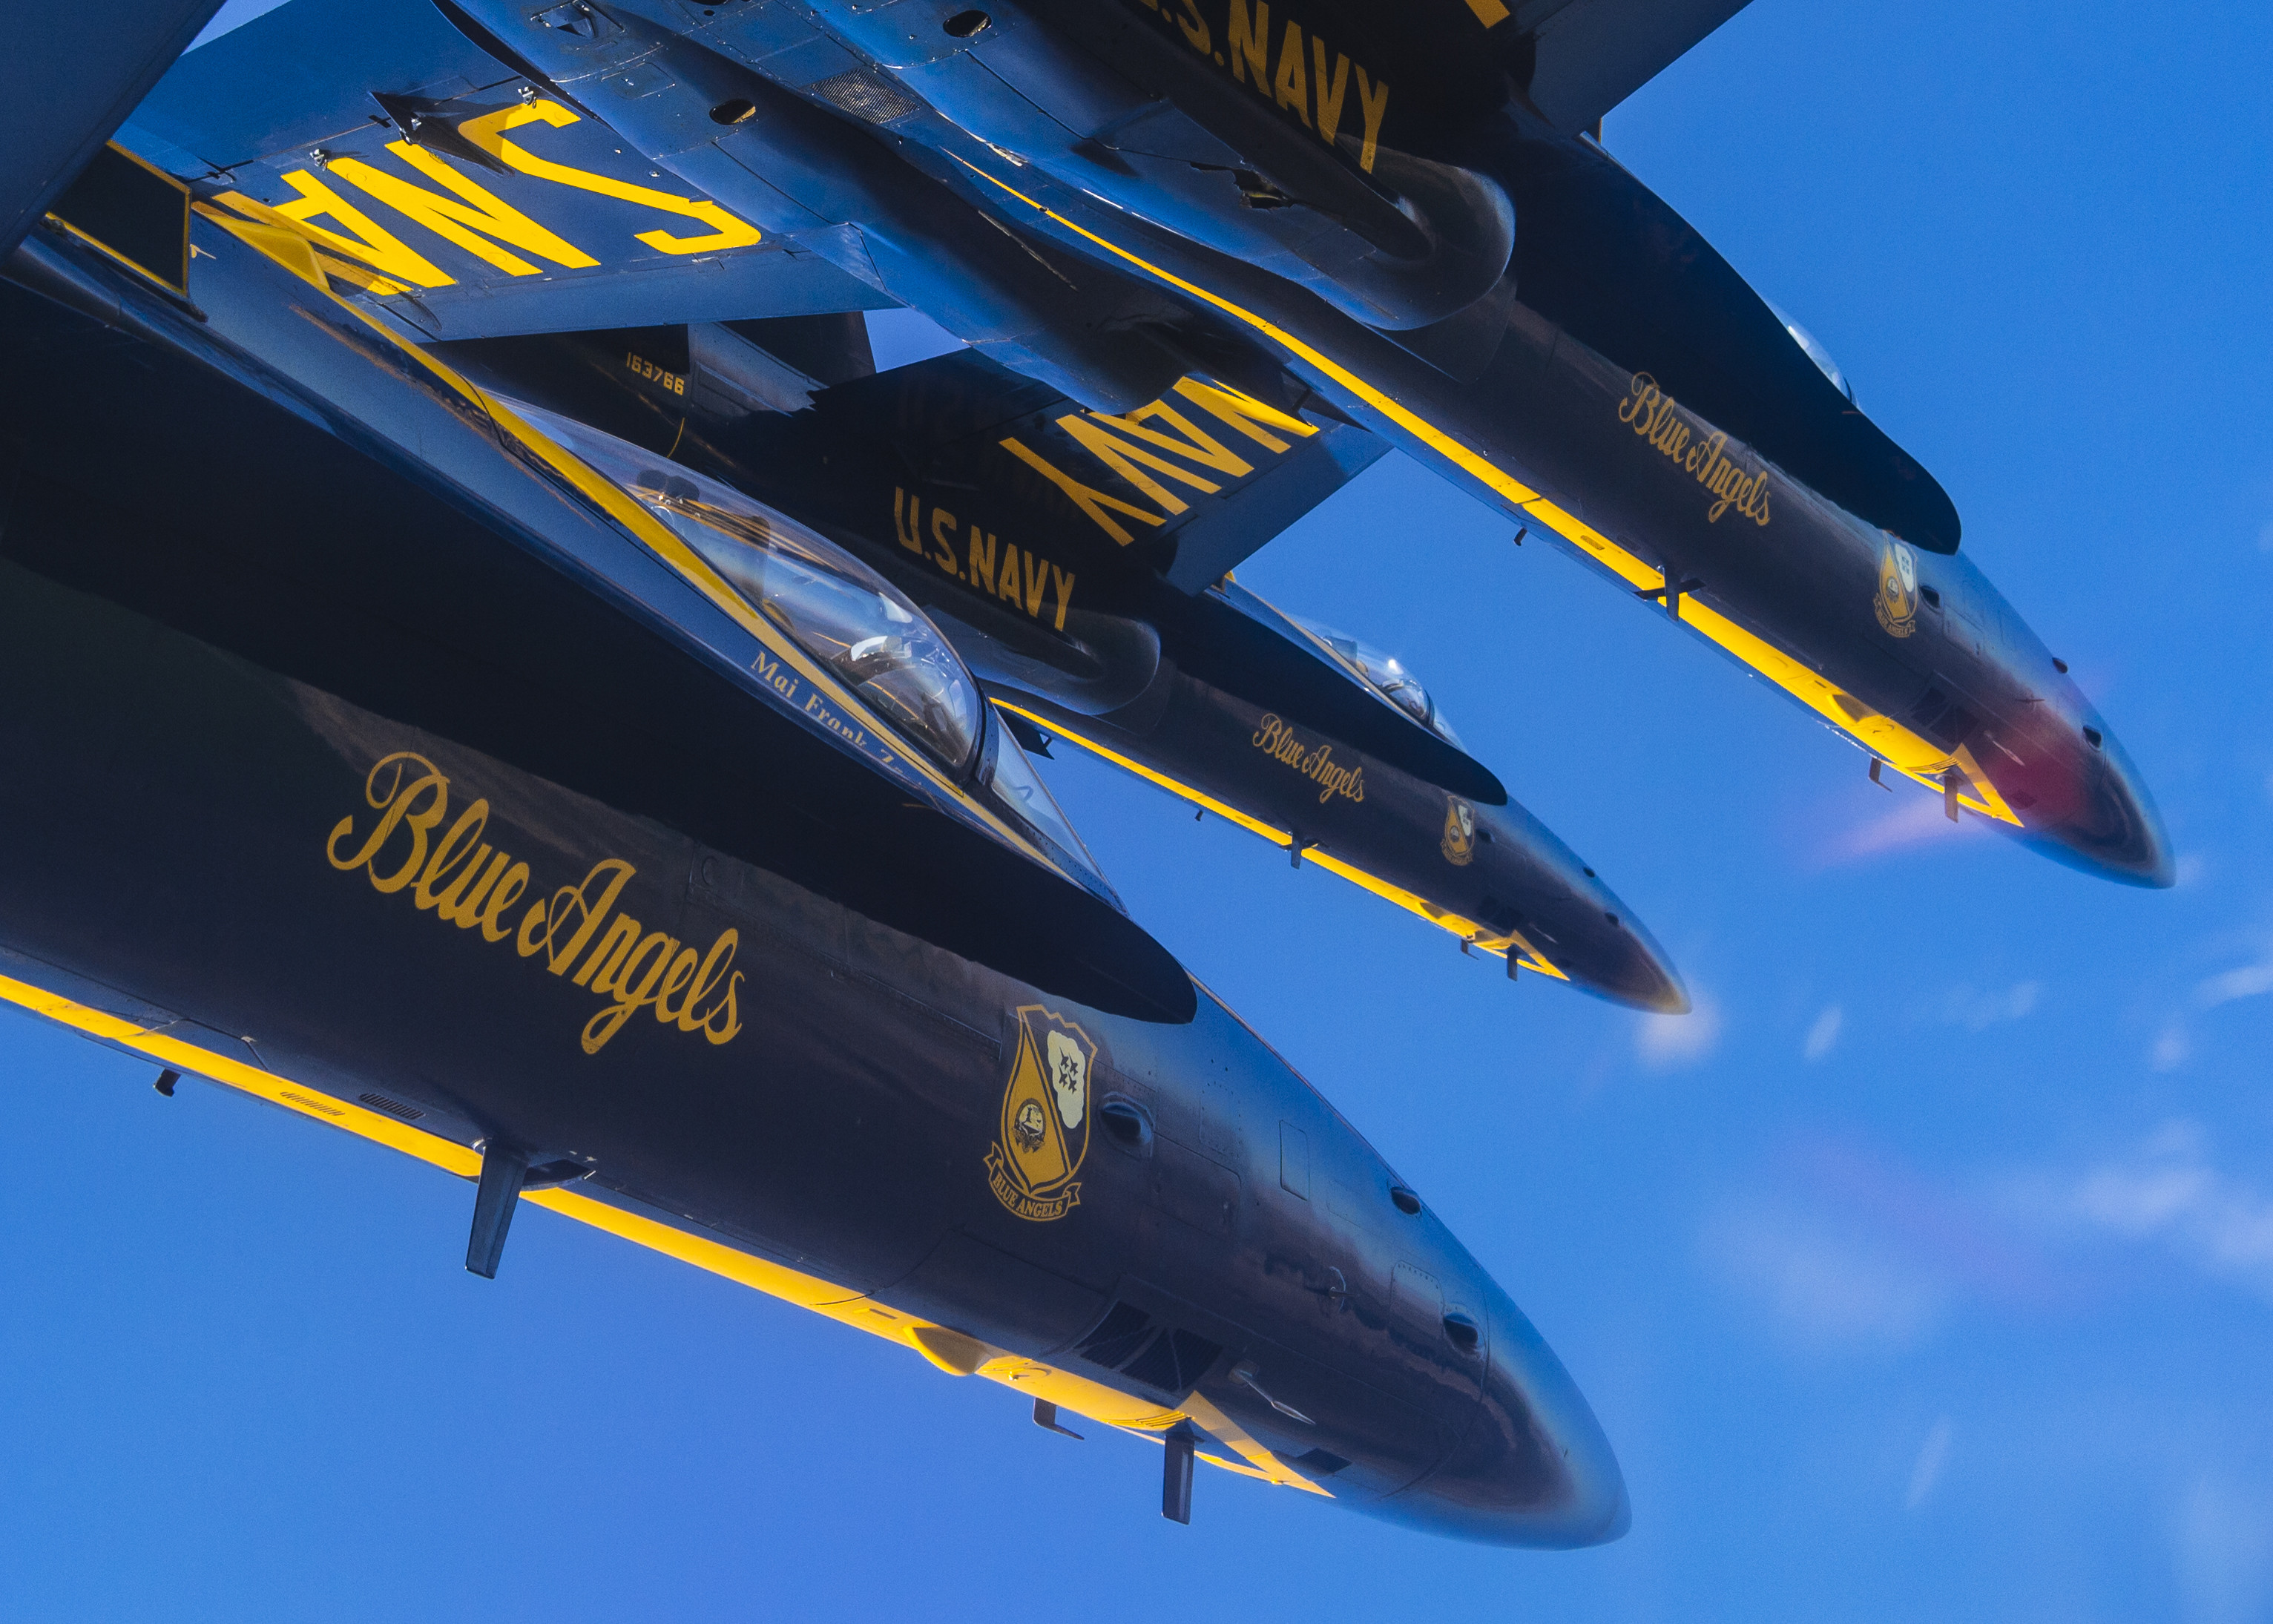 Pilots assigned to the U.S. Navy flight demonstration squadron, the Blue Angels, take part in a training flight at Naval Air Facility El Centro, Calif., on Feb. 14, 2020. (MC2 Cody Hendrix/Navy)